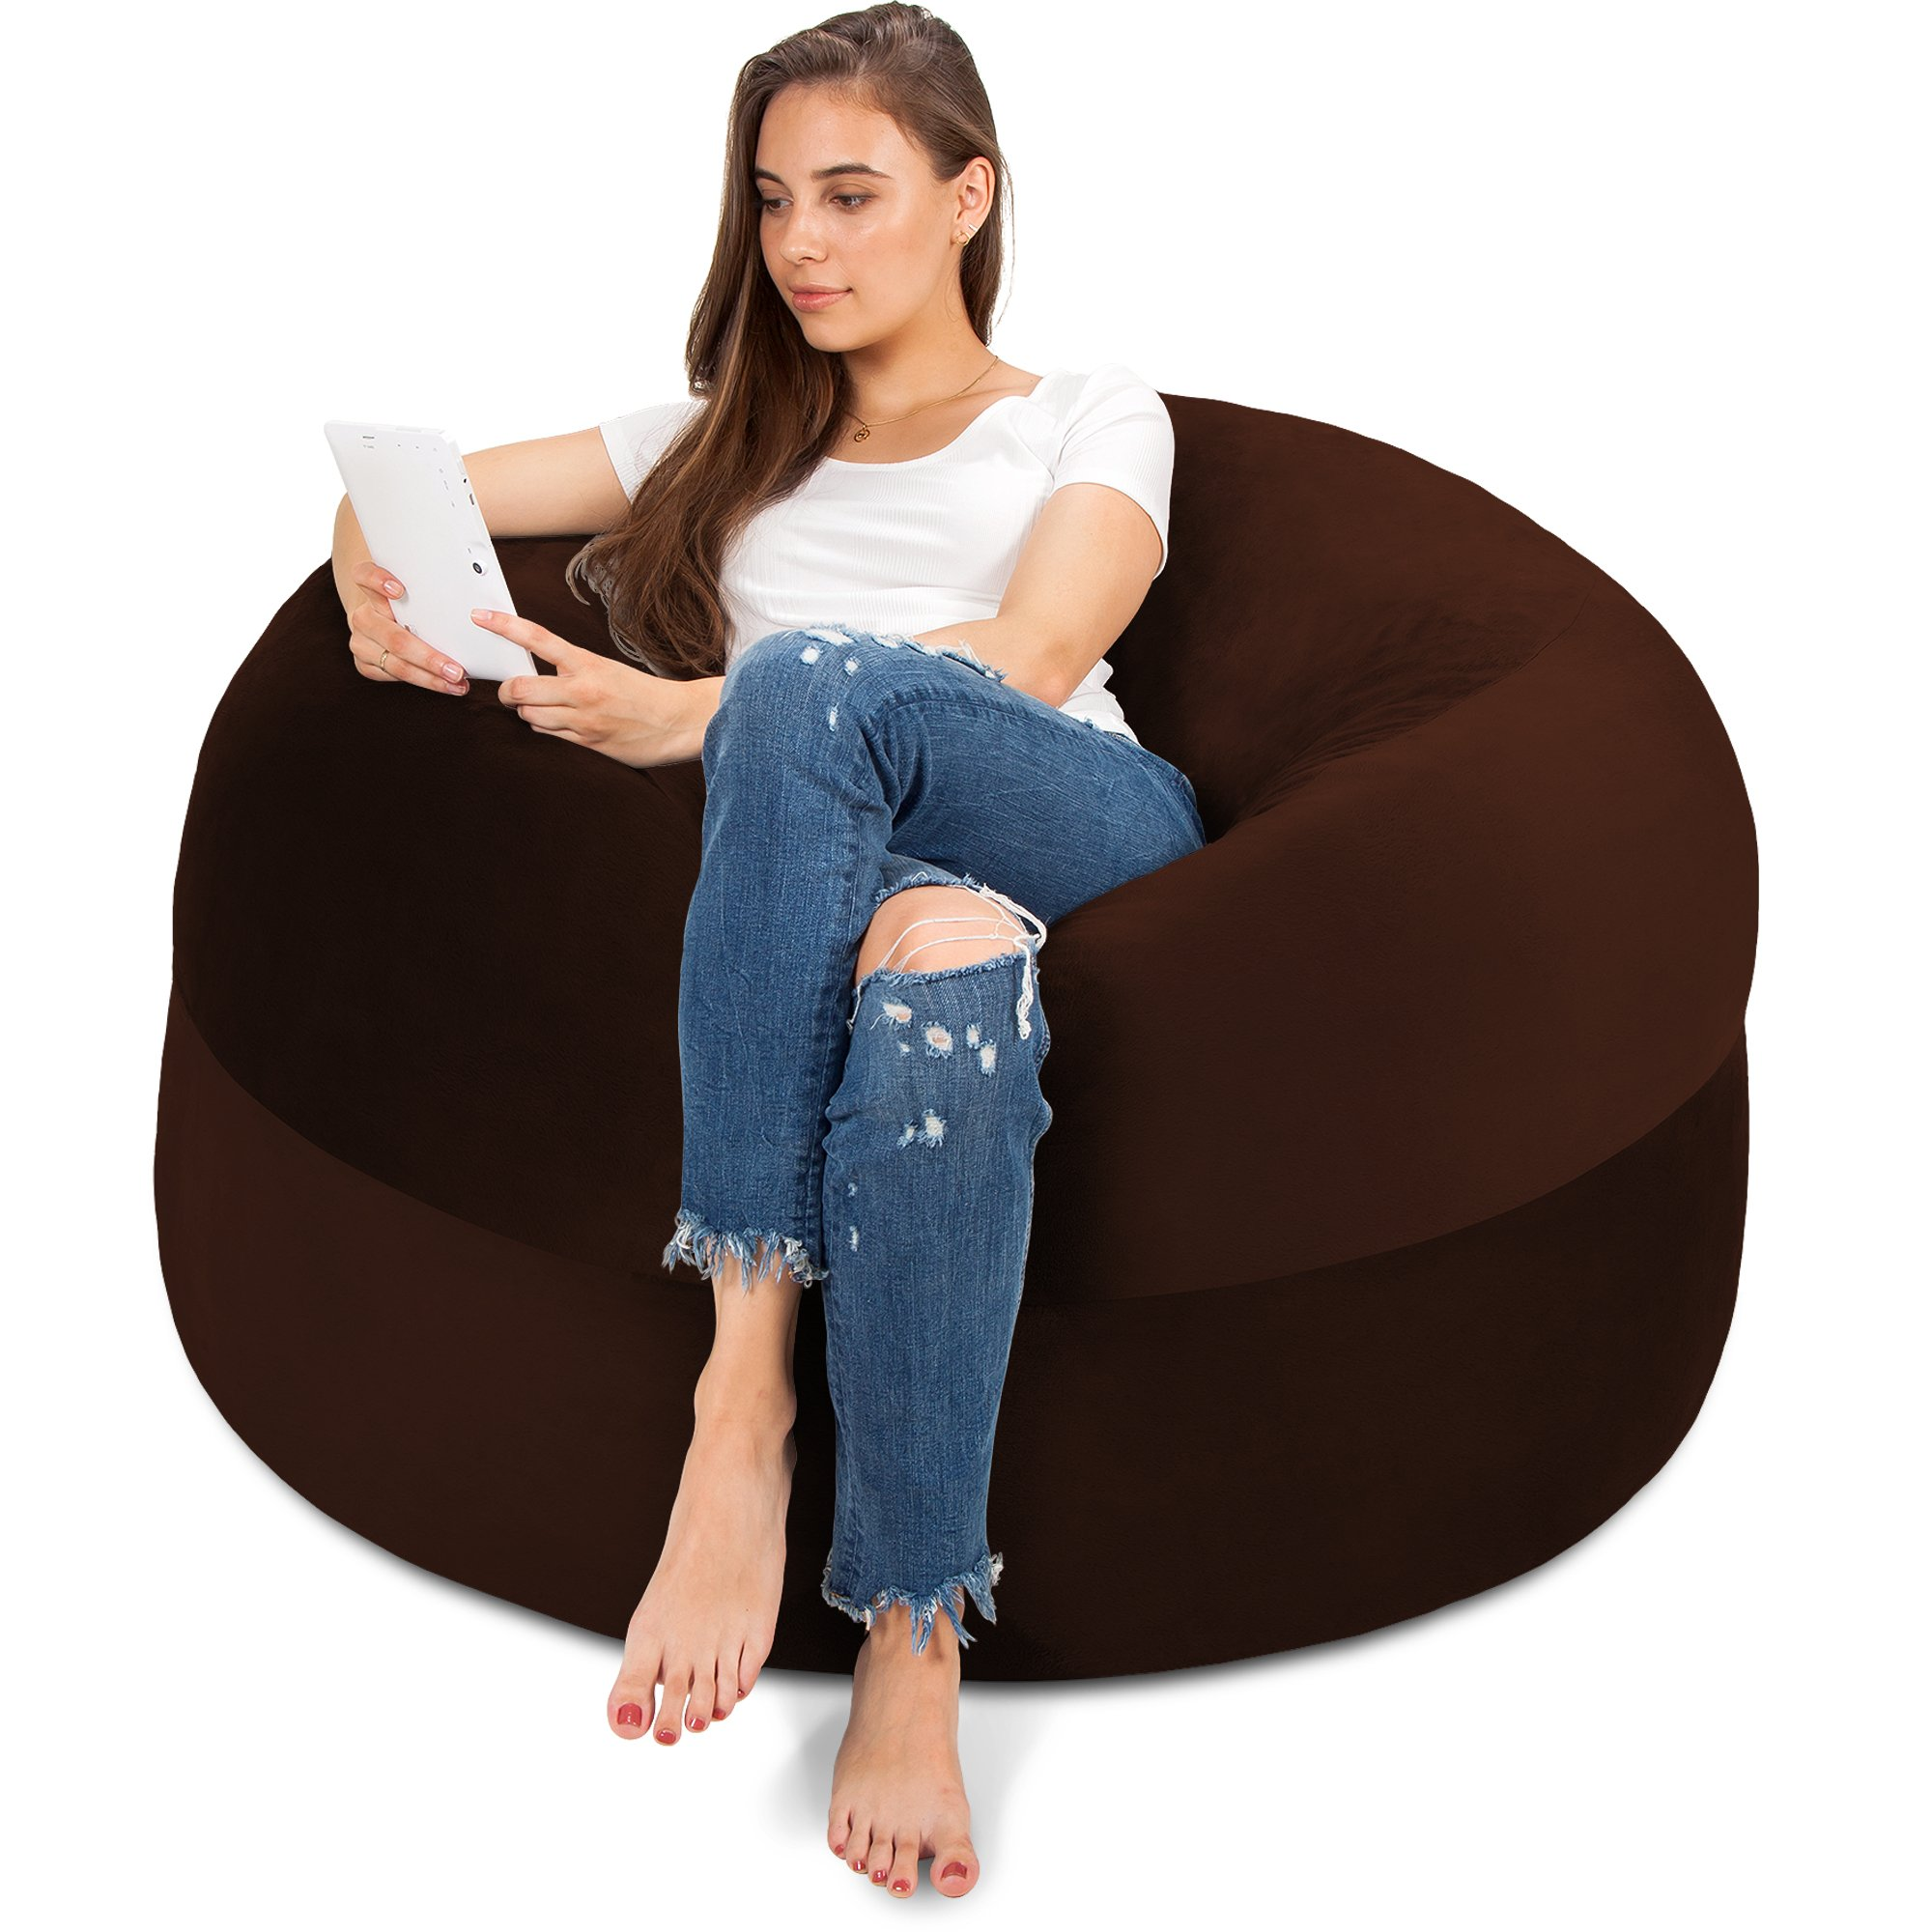 Swell 17 Best Bean Bag Chairs Of 2019 To Consider For Your Living Beatyapartments Chair Design Images Beatyapartmentscom